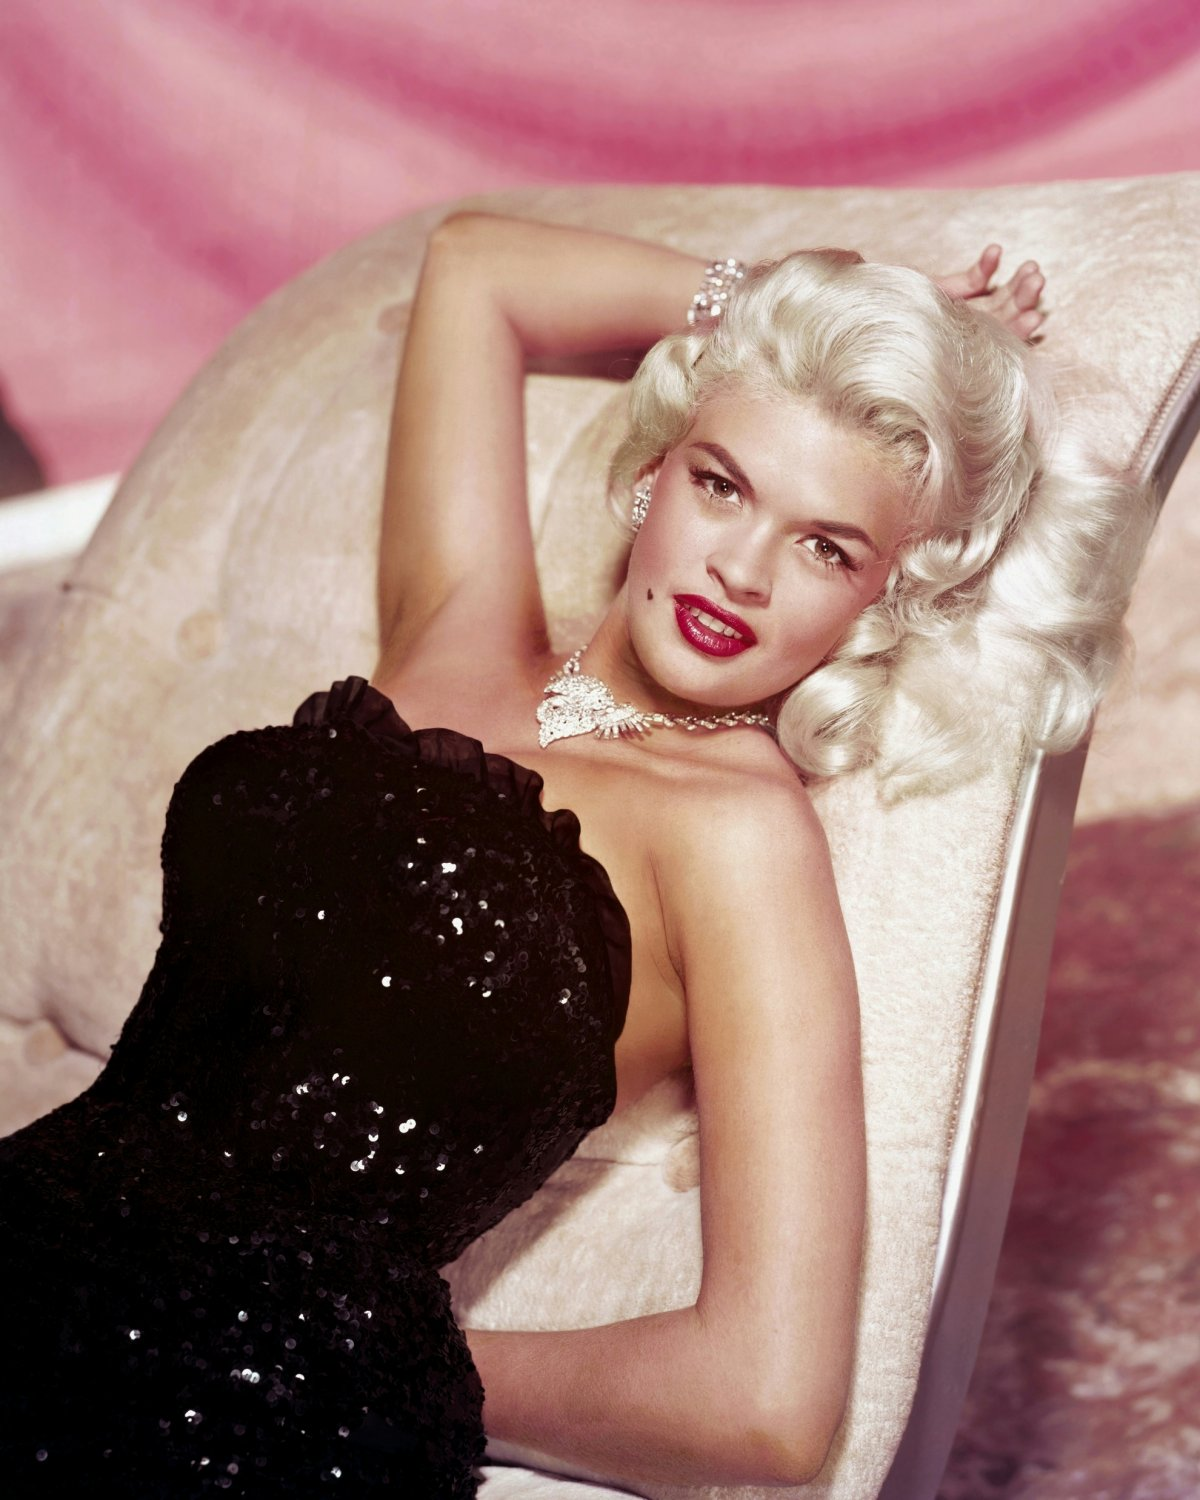 ACTRESS JAYNE MANSFIELD HOLLYWOOD SEX-SYMBOL - 8X10 PUBLICITY PHOTO (OP-001)